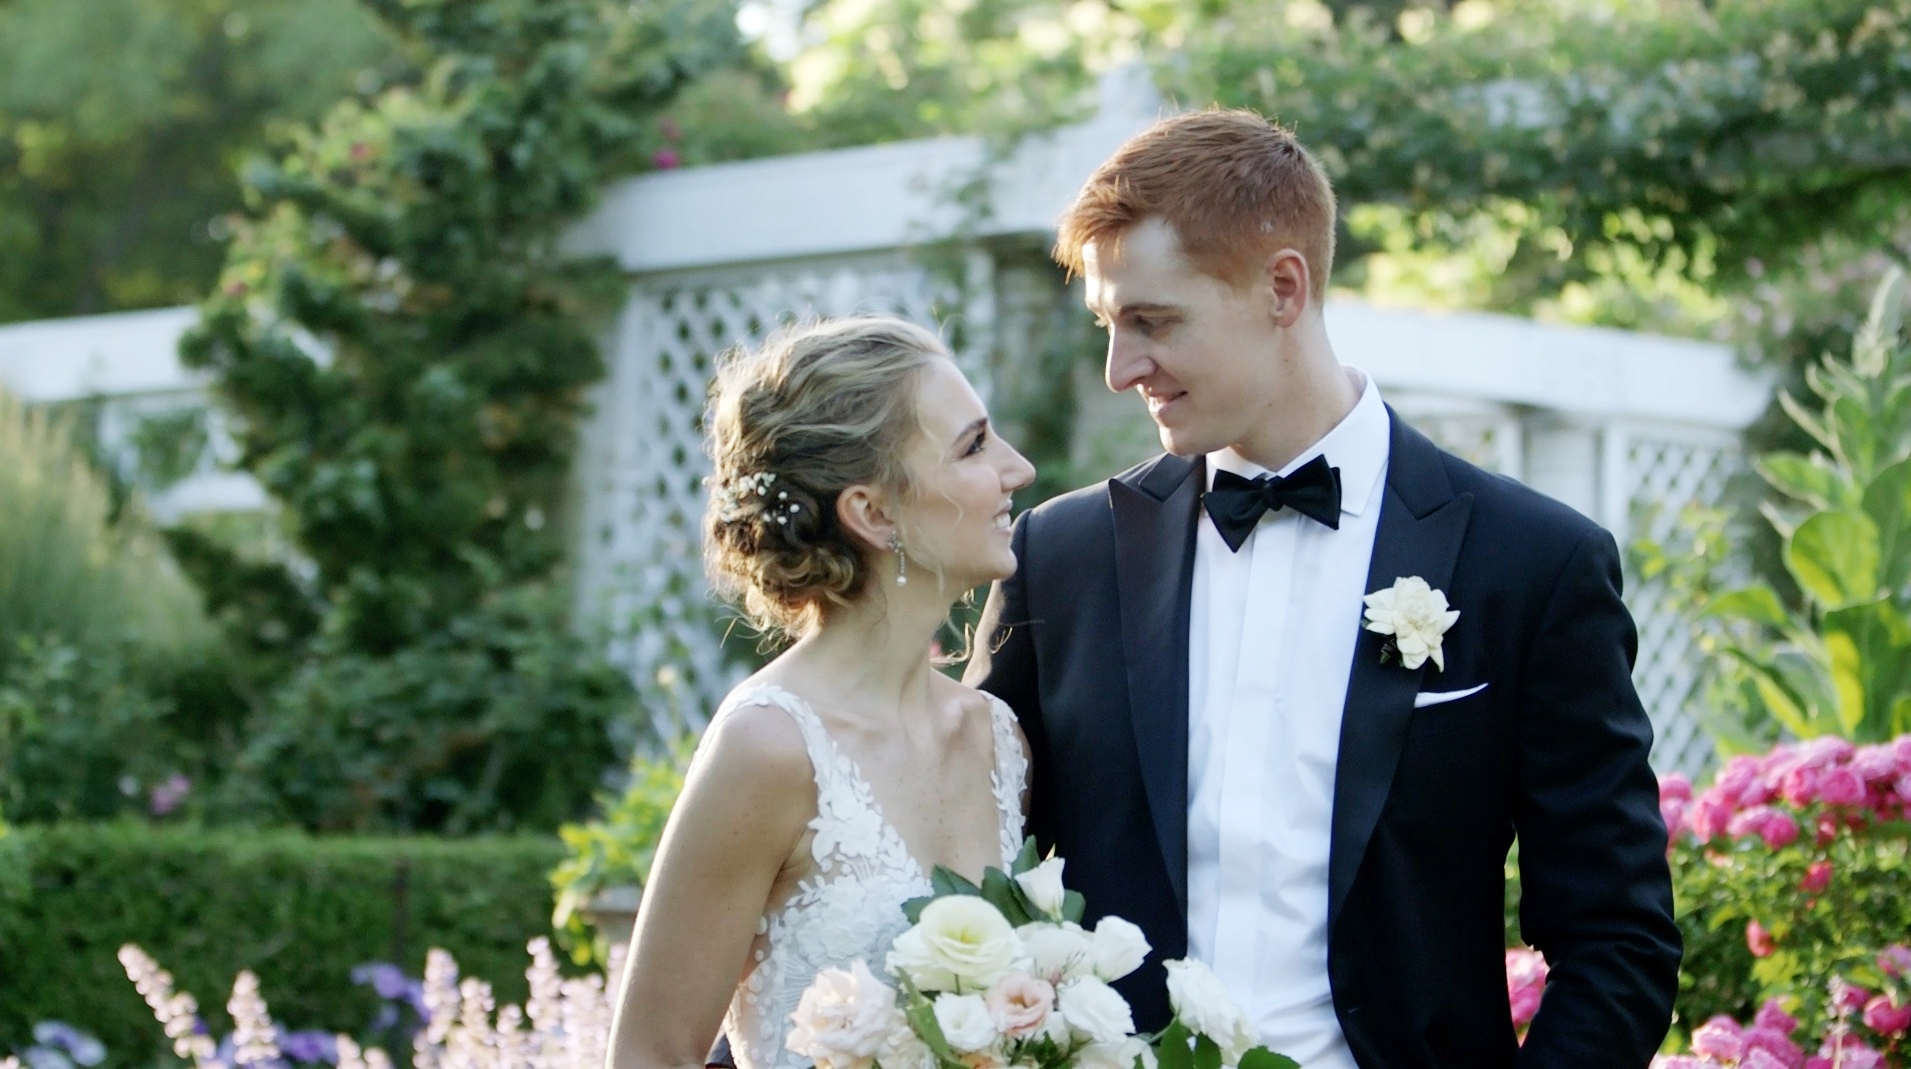 Amanda + Nick | Brooklyn, New York | Brooklyn Botanic Garden